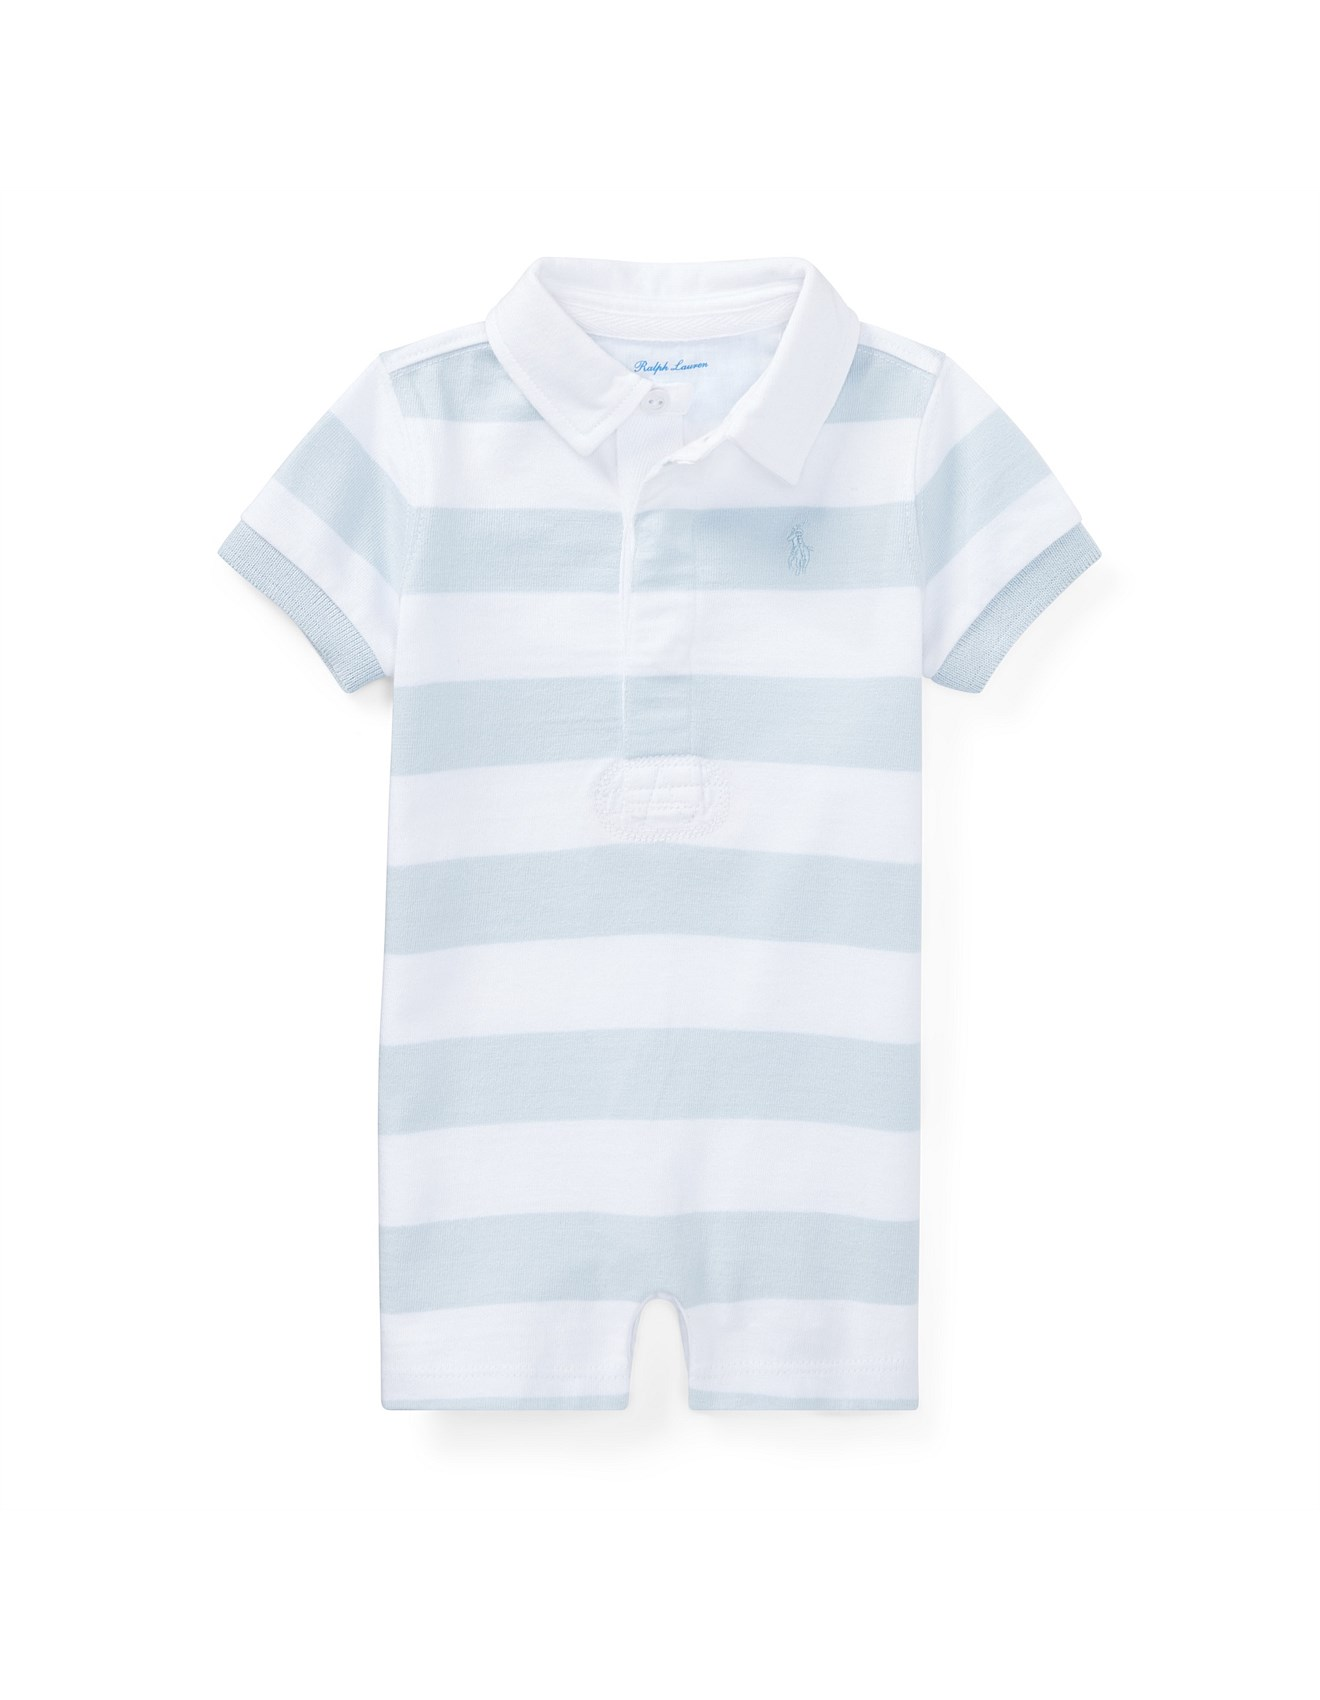 44ee16bf Baby Clothing | Baby Boy & Baby Girl Clothes | David Jones - Striped ...